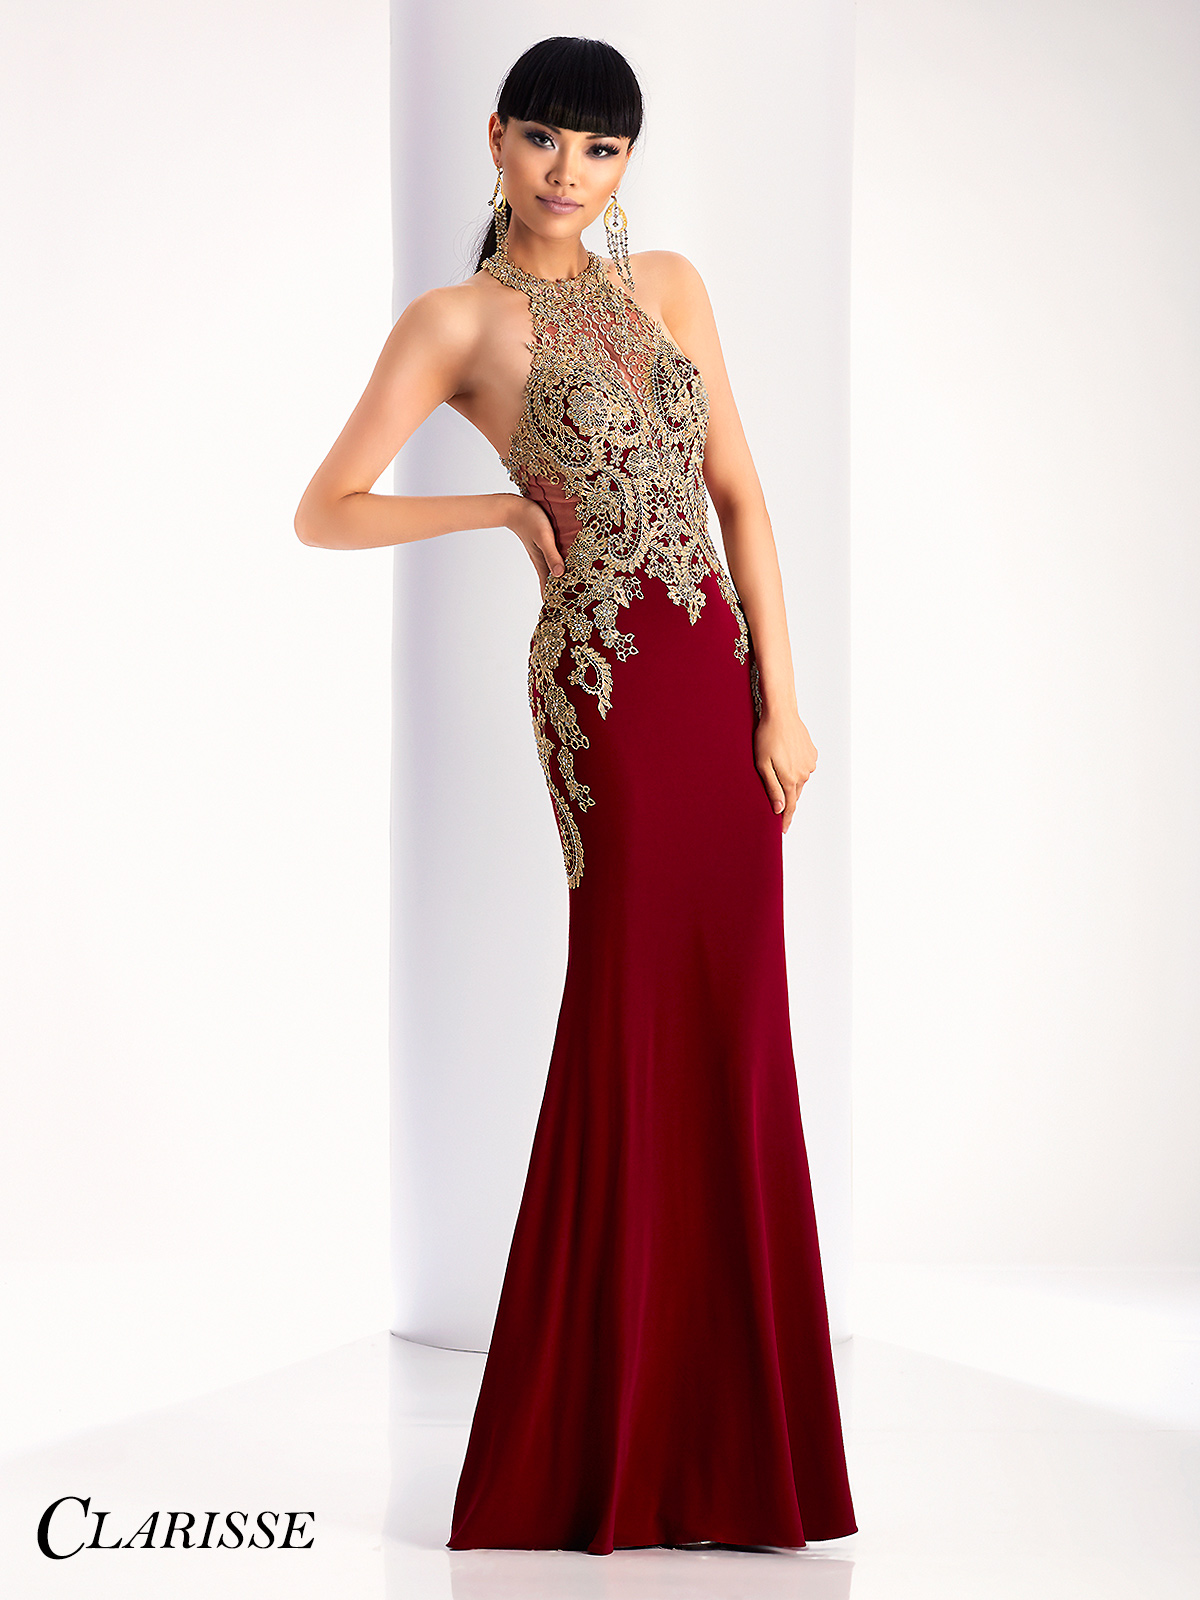 Clarisse Prom Dress 4819 | Promgirl.net